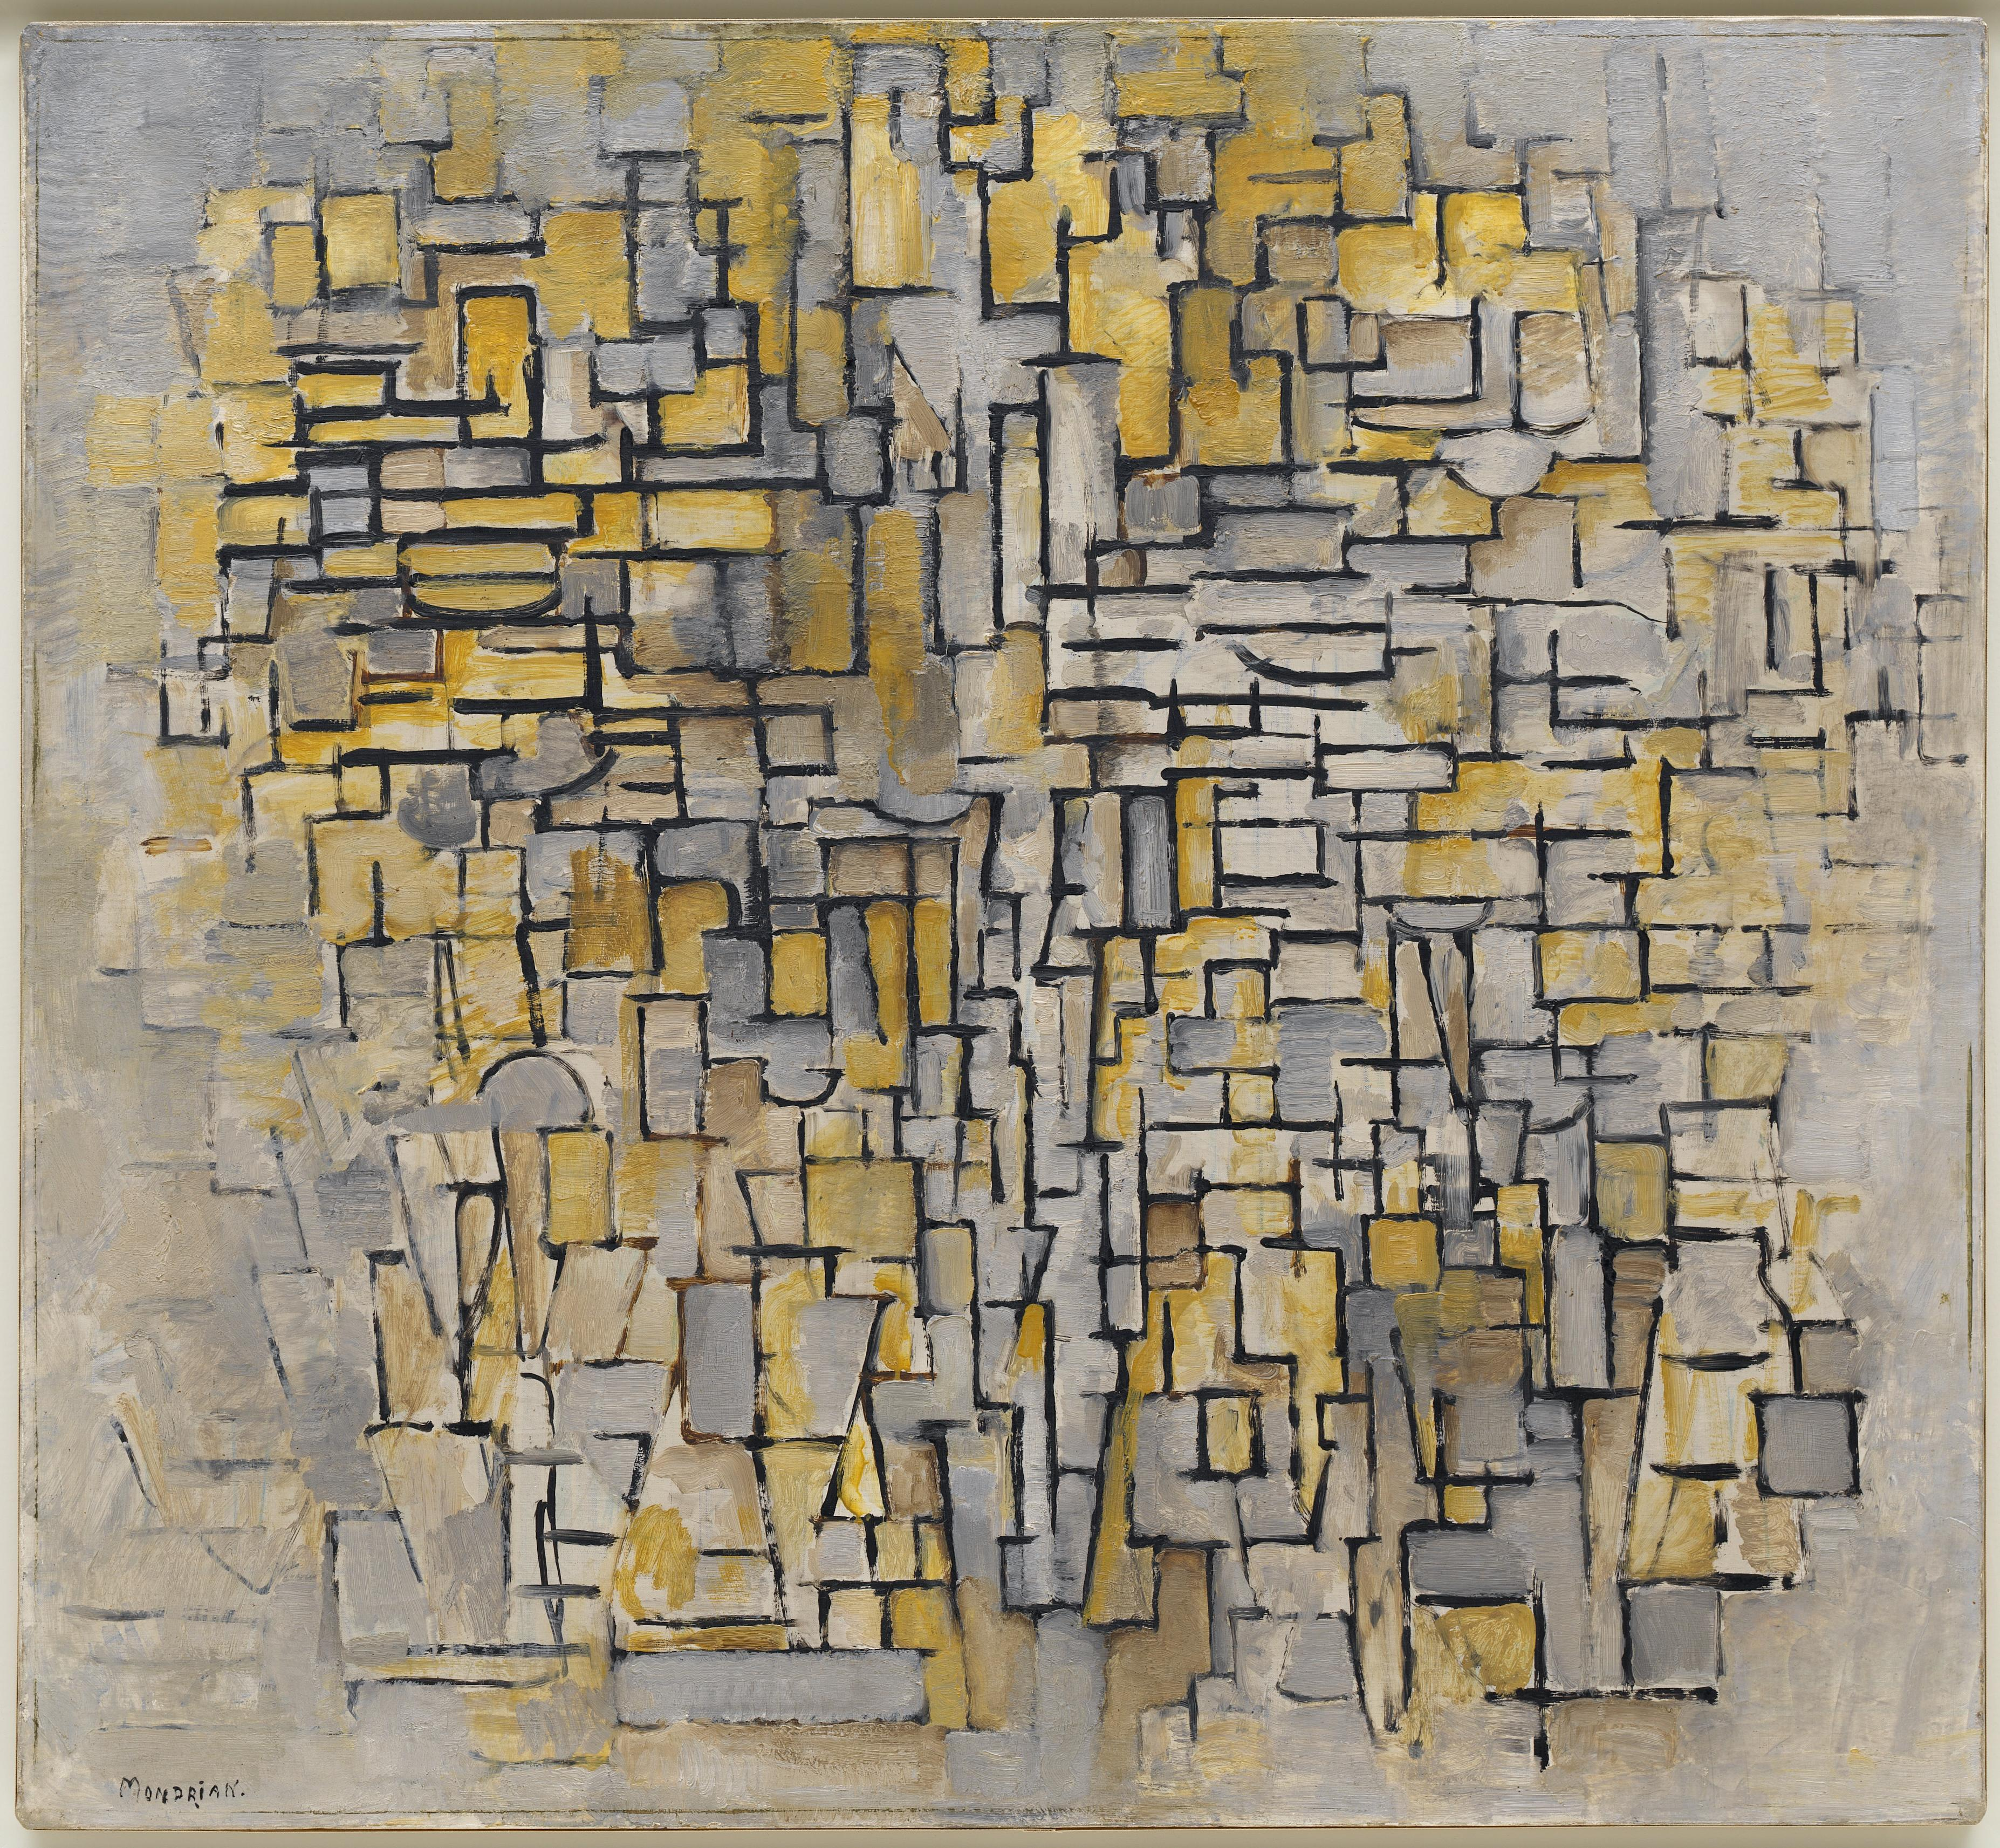 Mondrian  Order and randomness in abstract painting   The Charnel House Piet Mondrian Title Tableau No  2 Composition No  VII Work Type Painting  Date 1913 Material